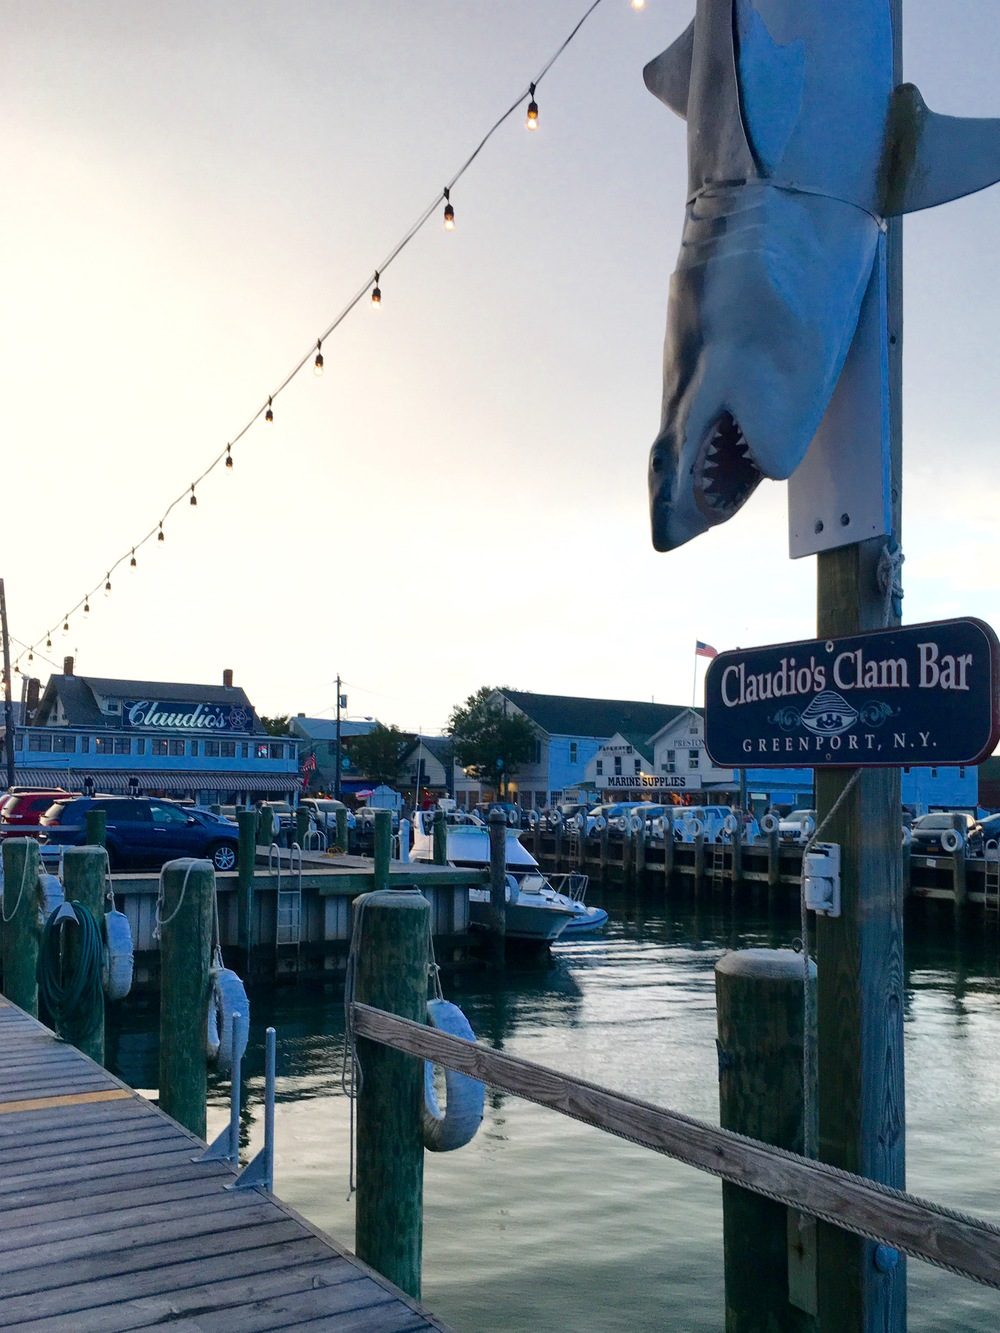 Claudios Clam Bar is the spot for steamers and a cold beer...